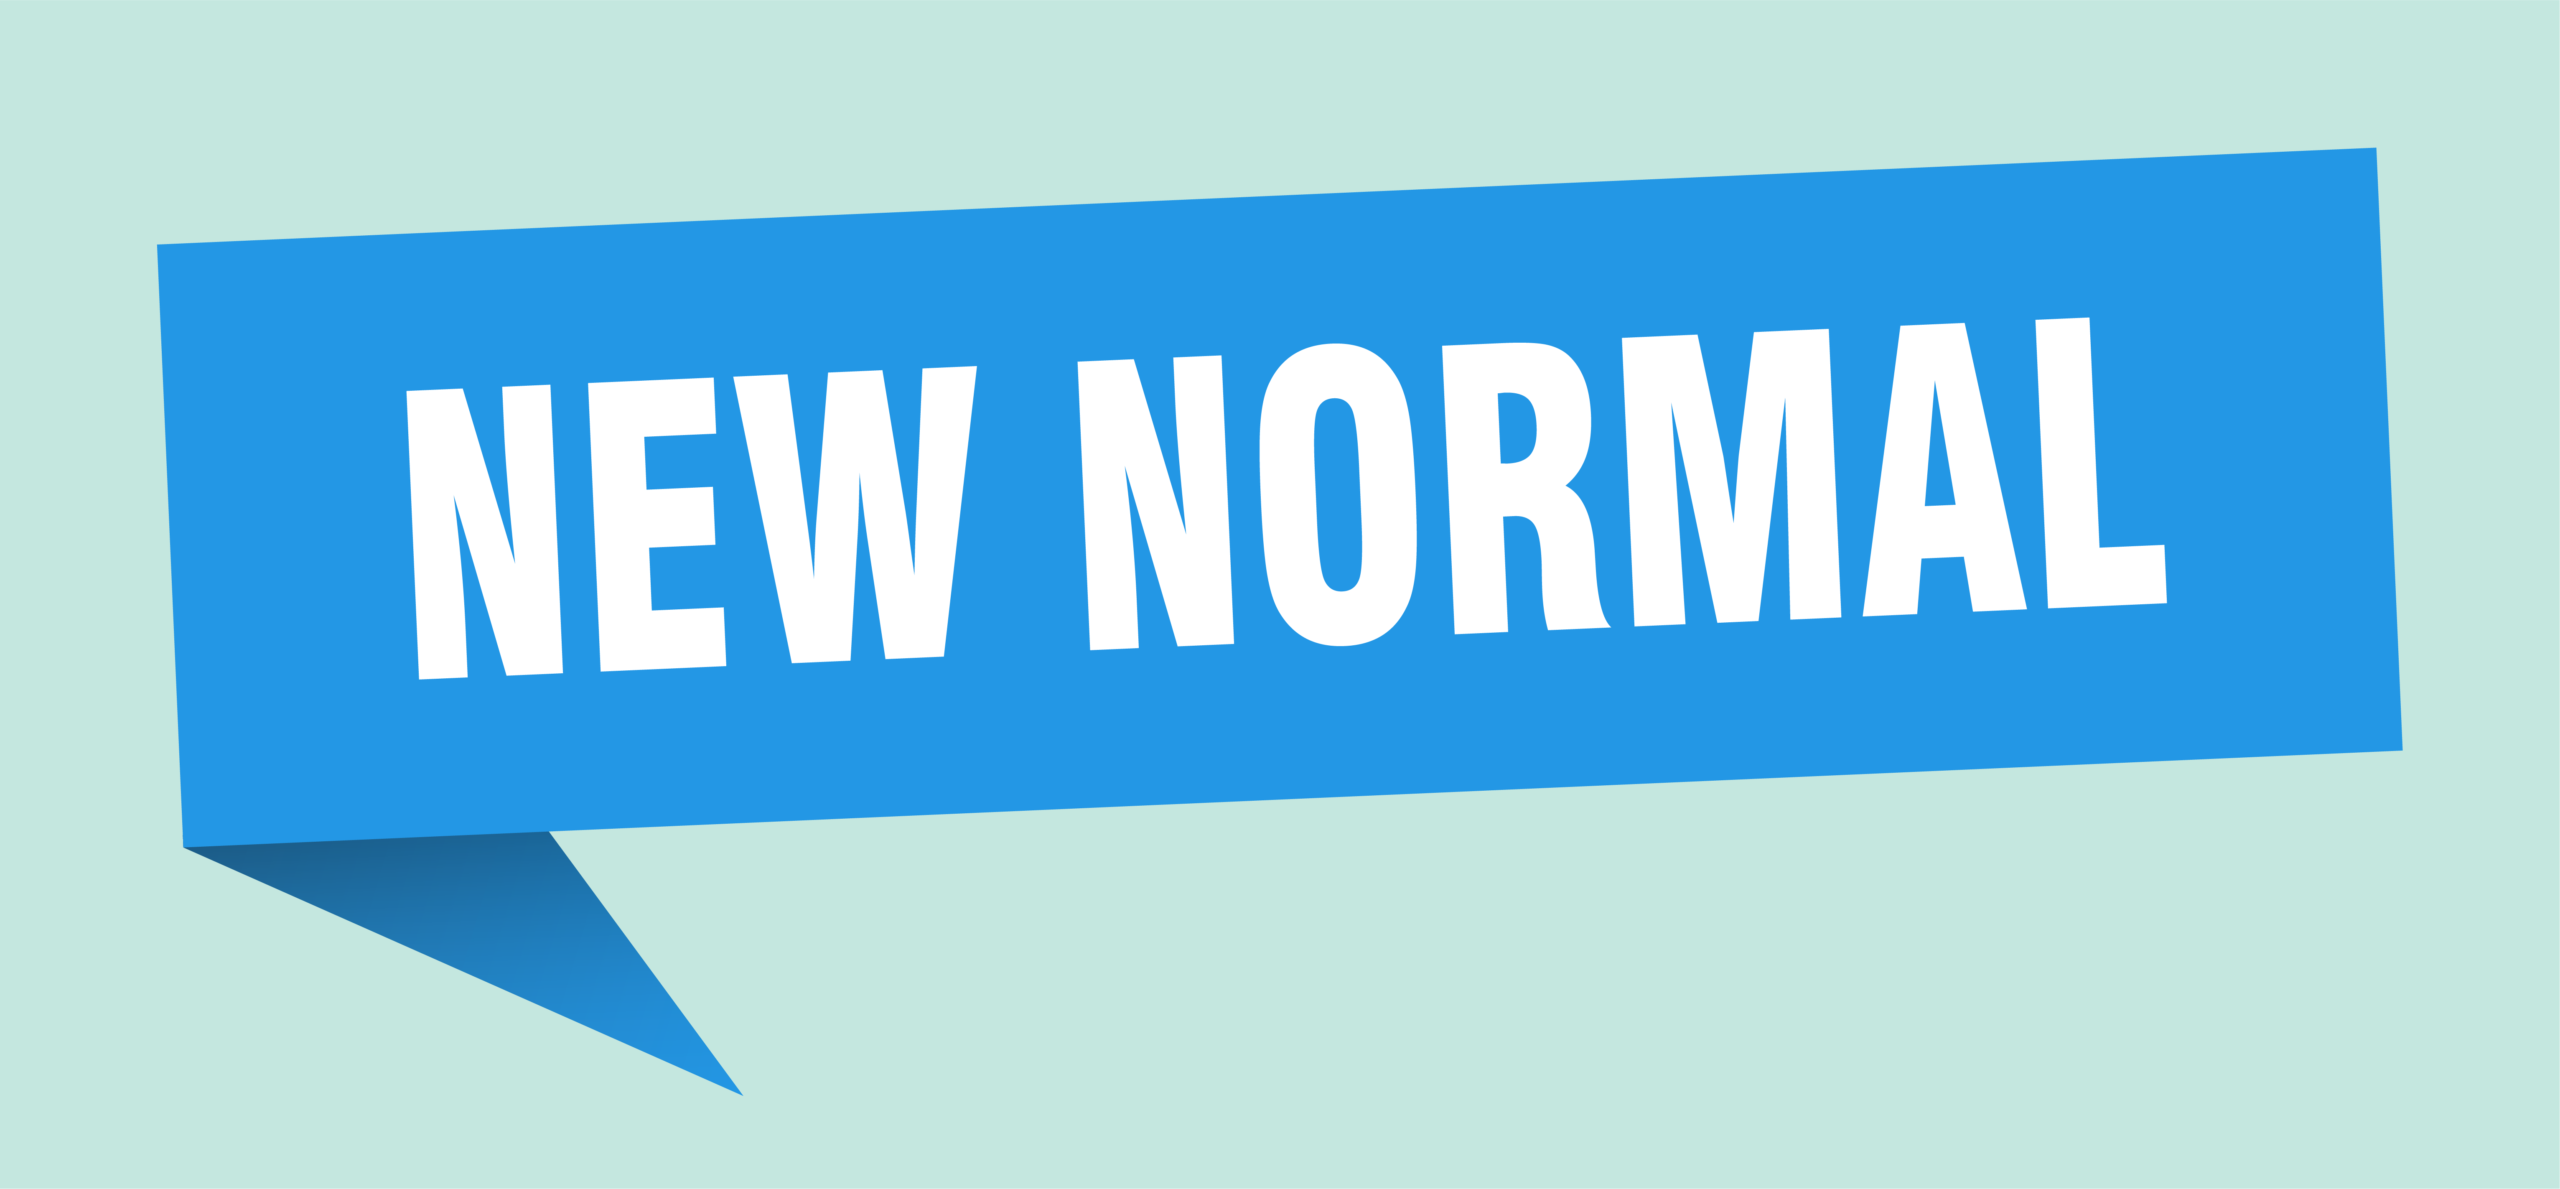 new_normal_text_graphic